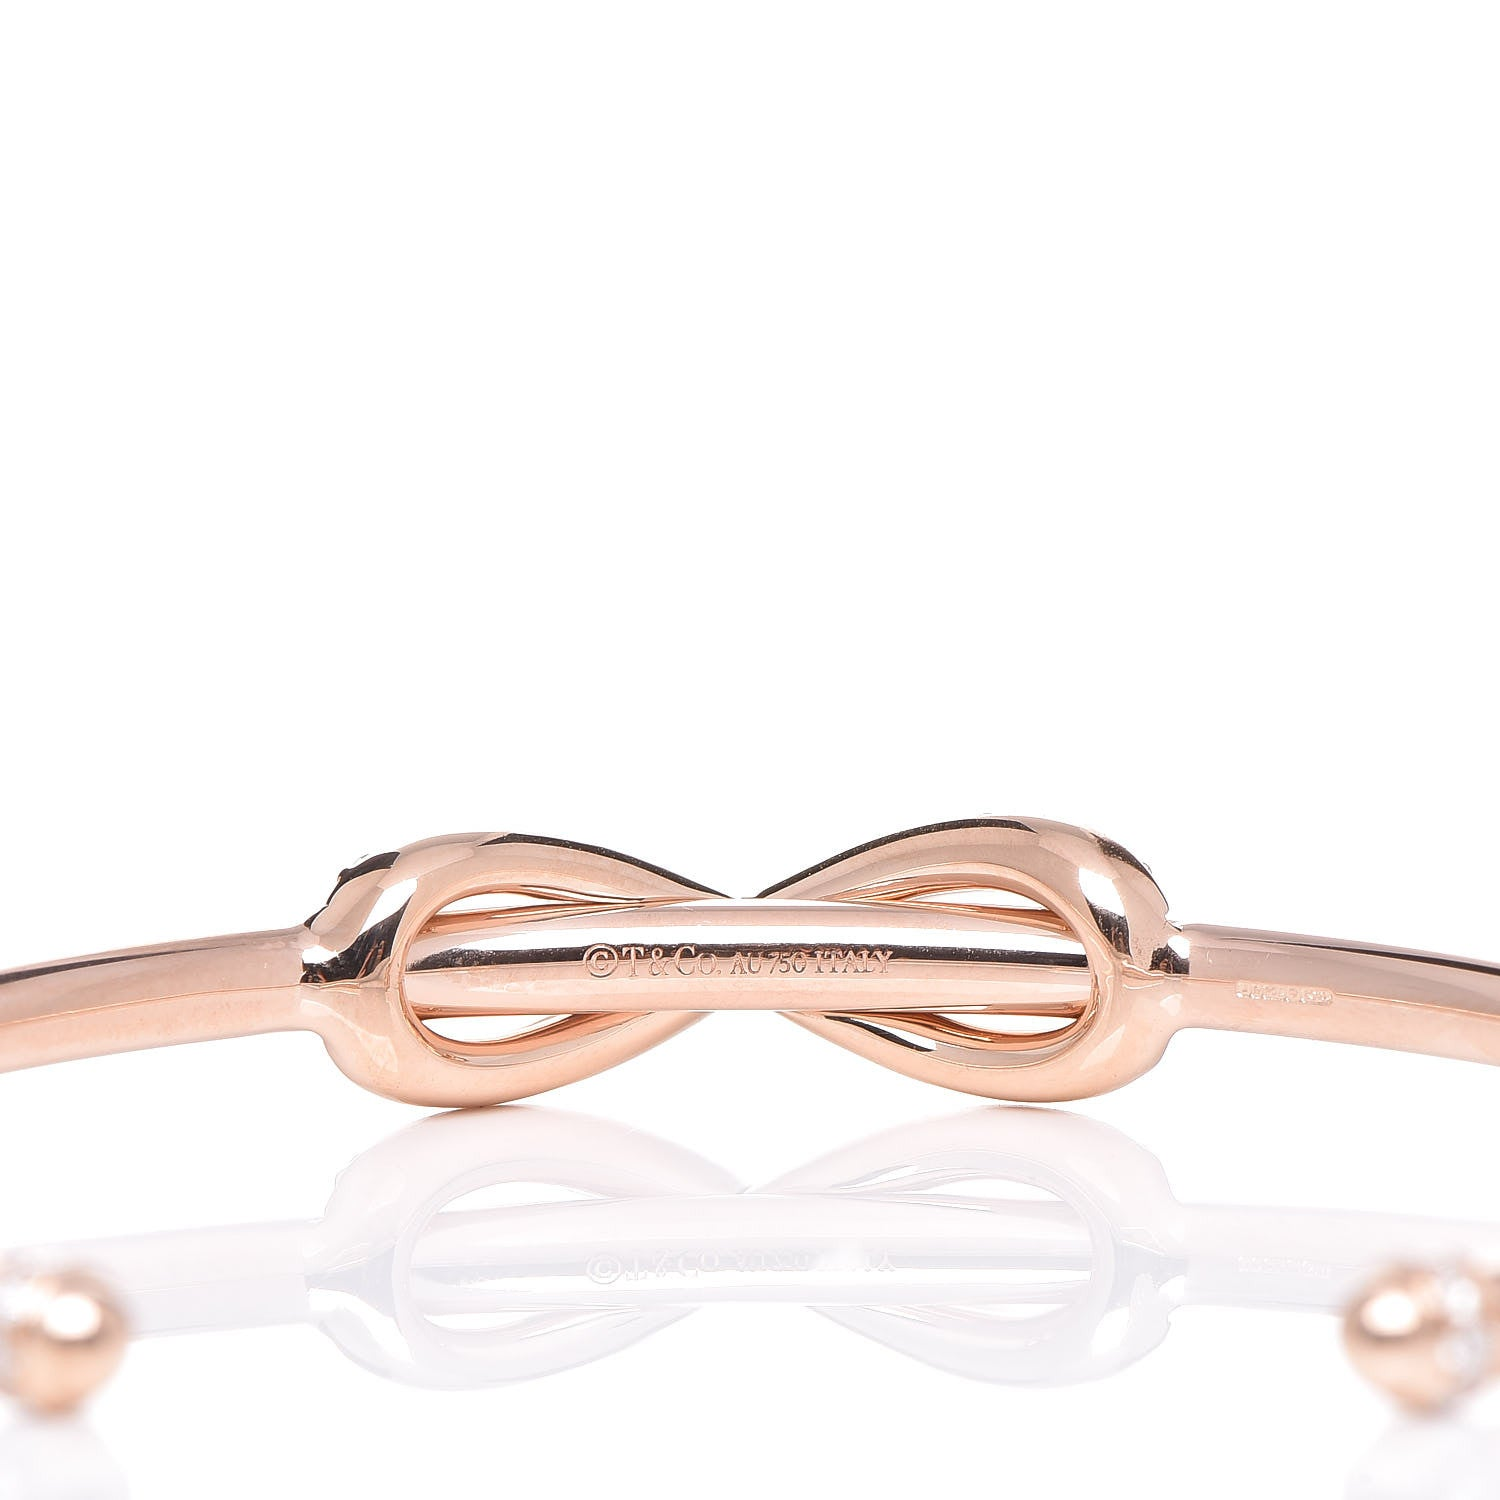 d3b932de8 ... Load image into Gallery viewer, Tiffany 18K Rose Gold Diamond Infinity  Cuff ...